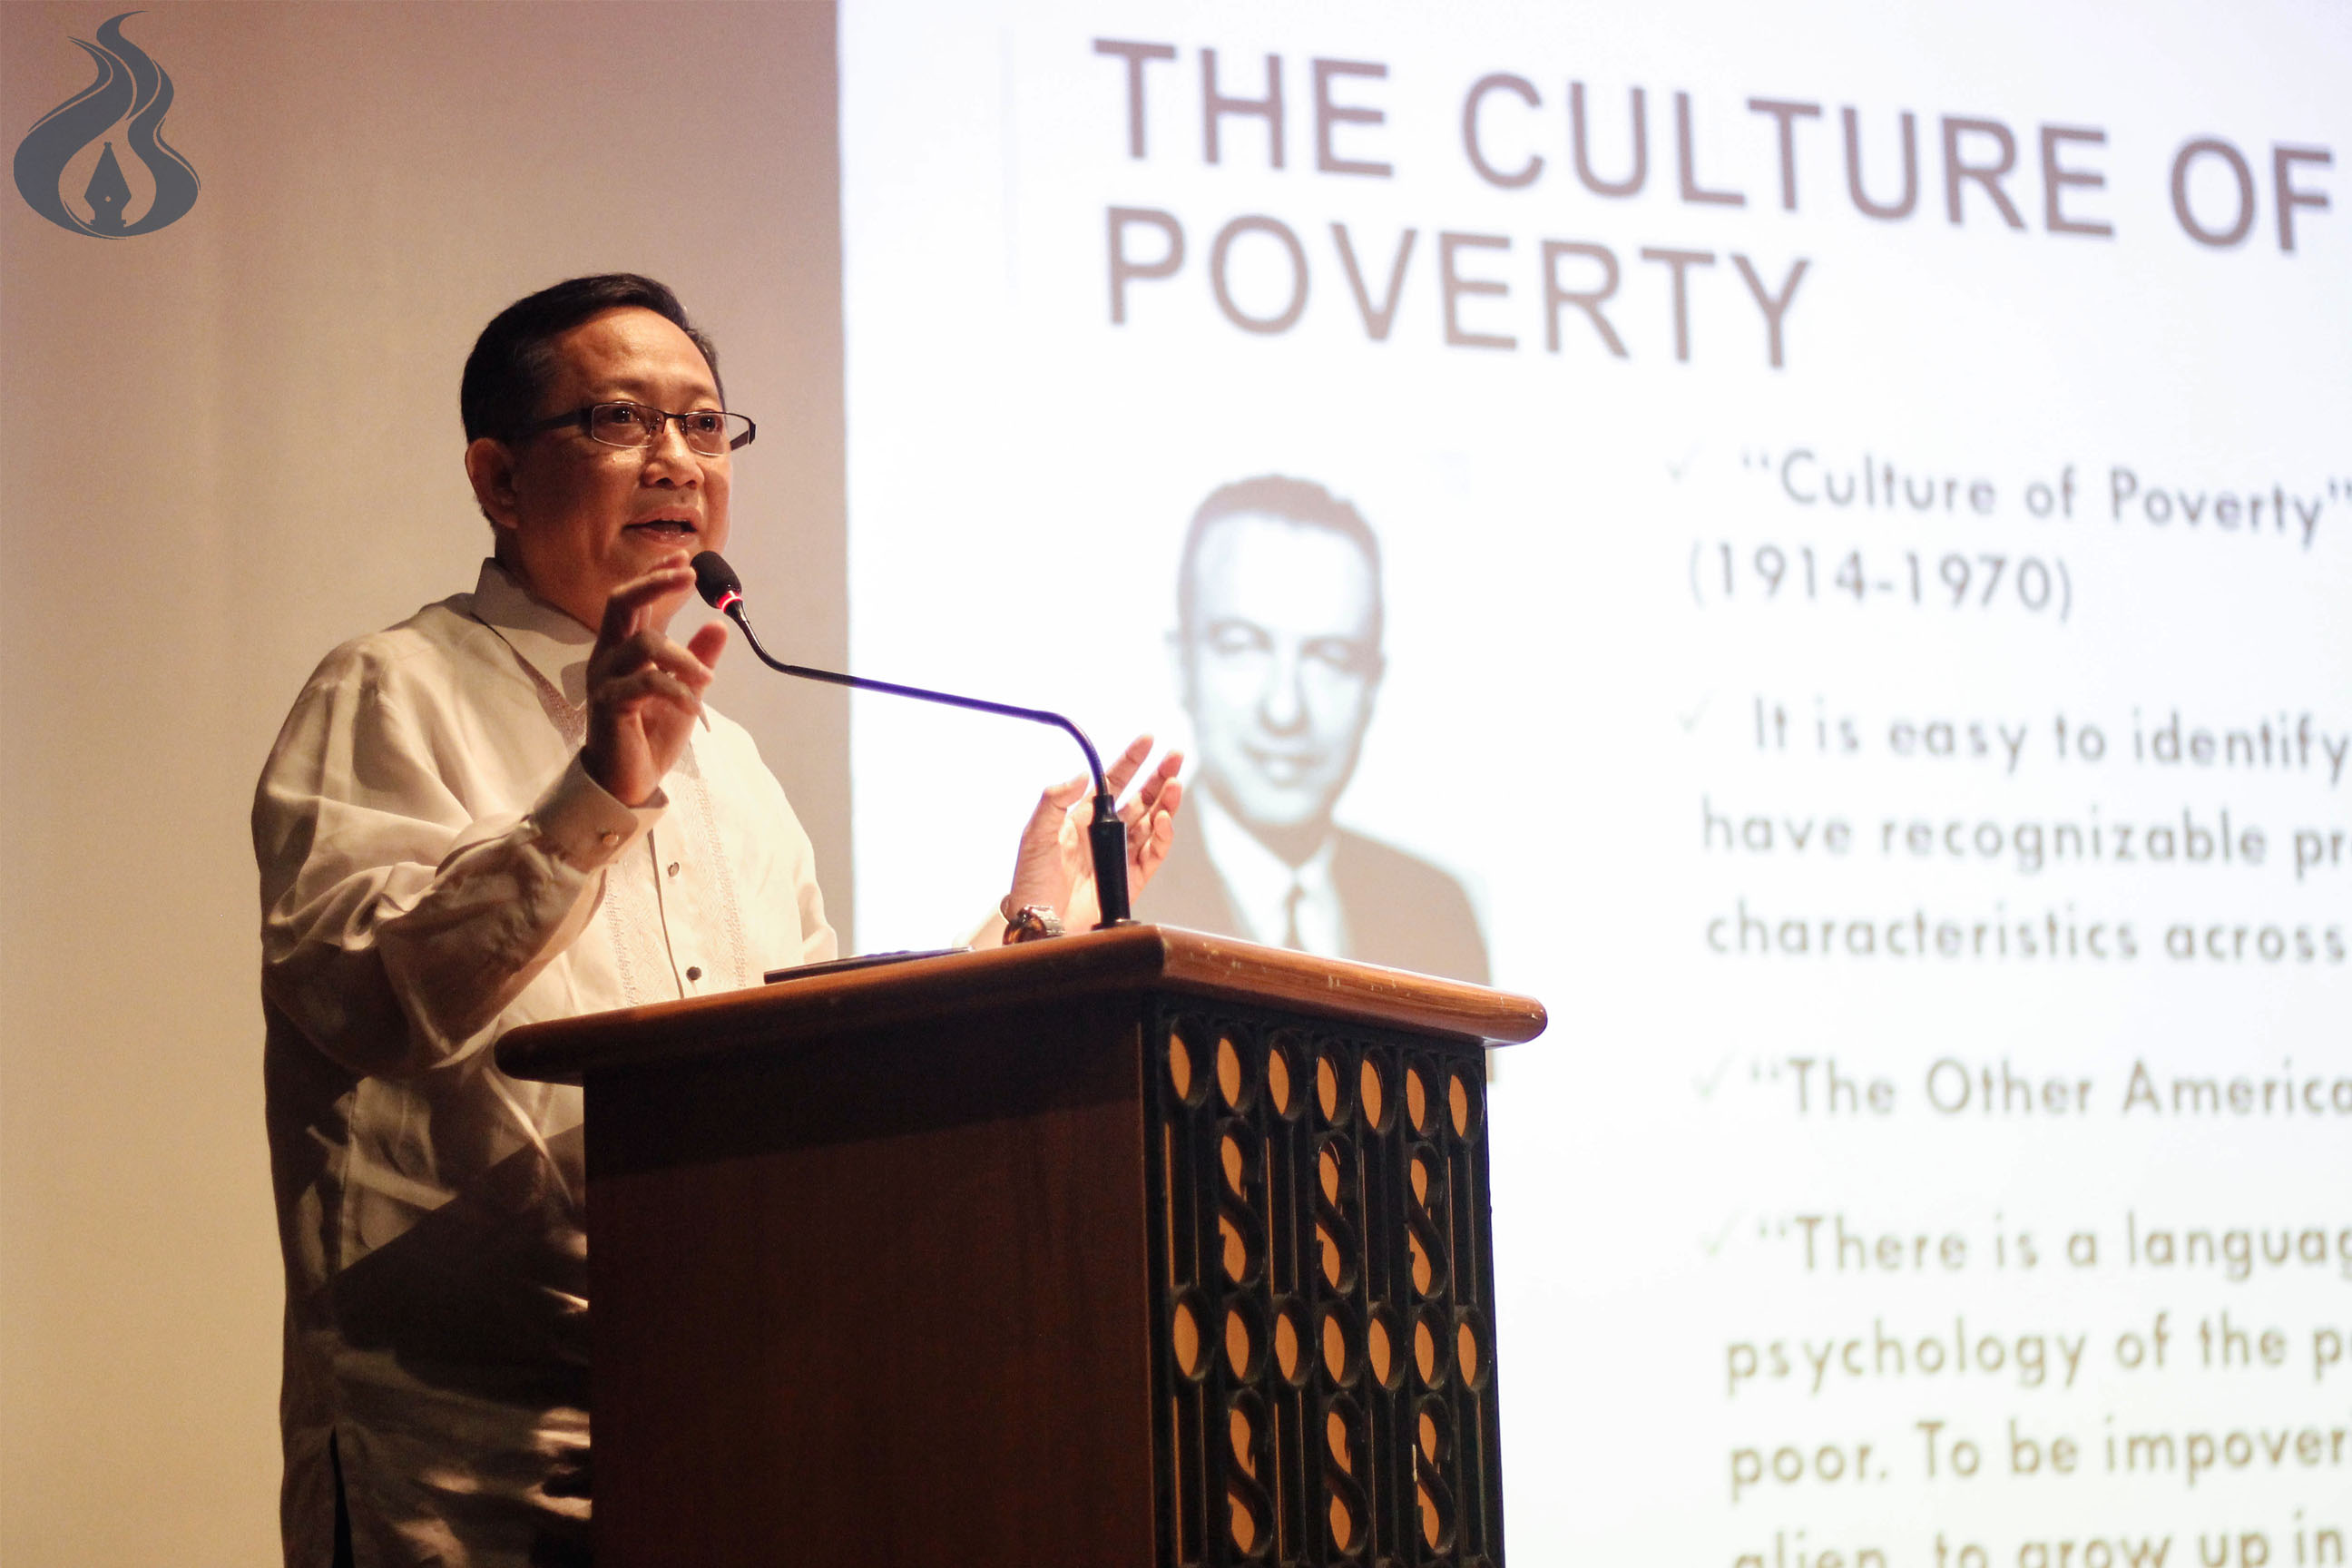 Gaps, efforts in eradicating poverty tackled in 3rd int'l sociology conference